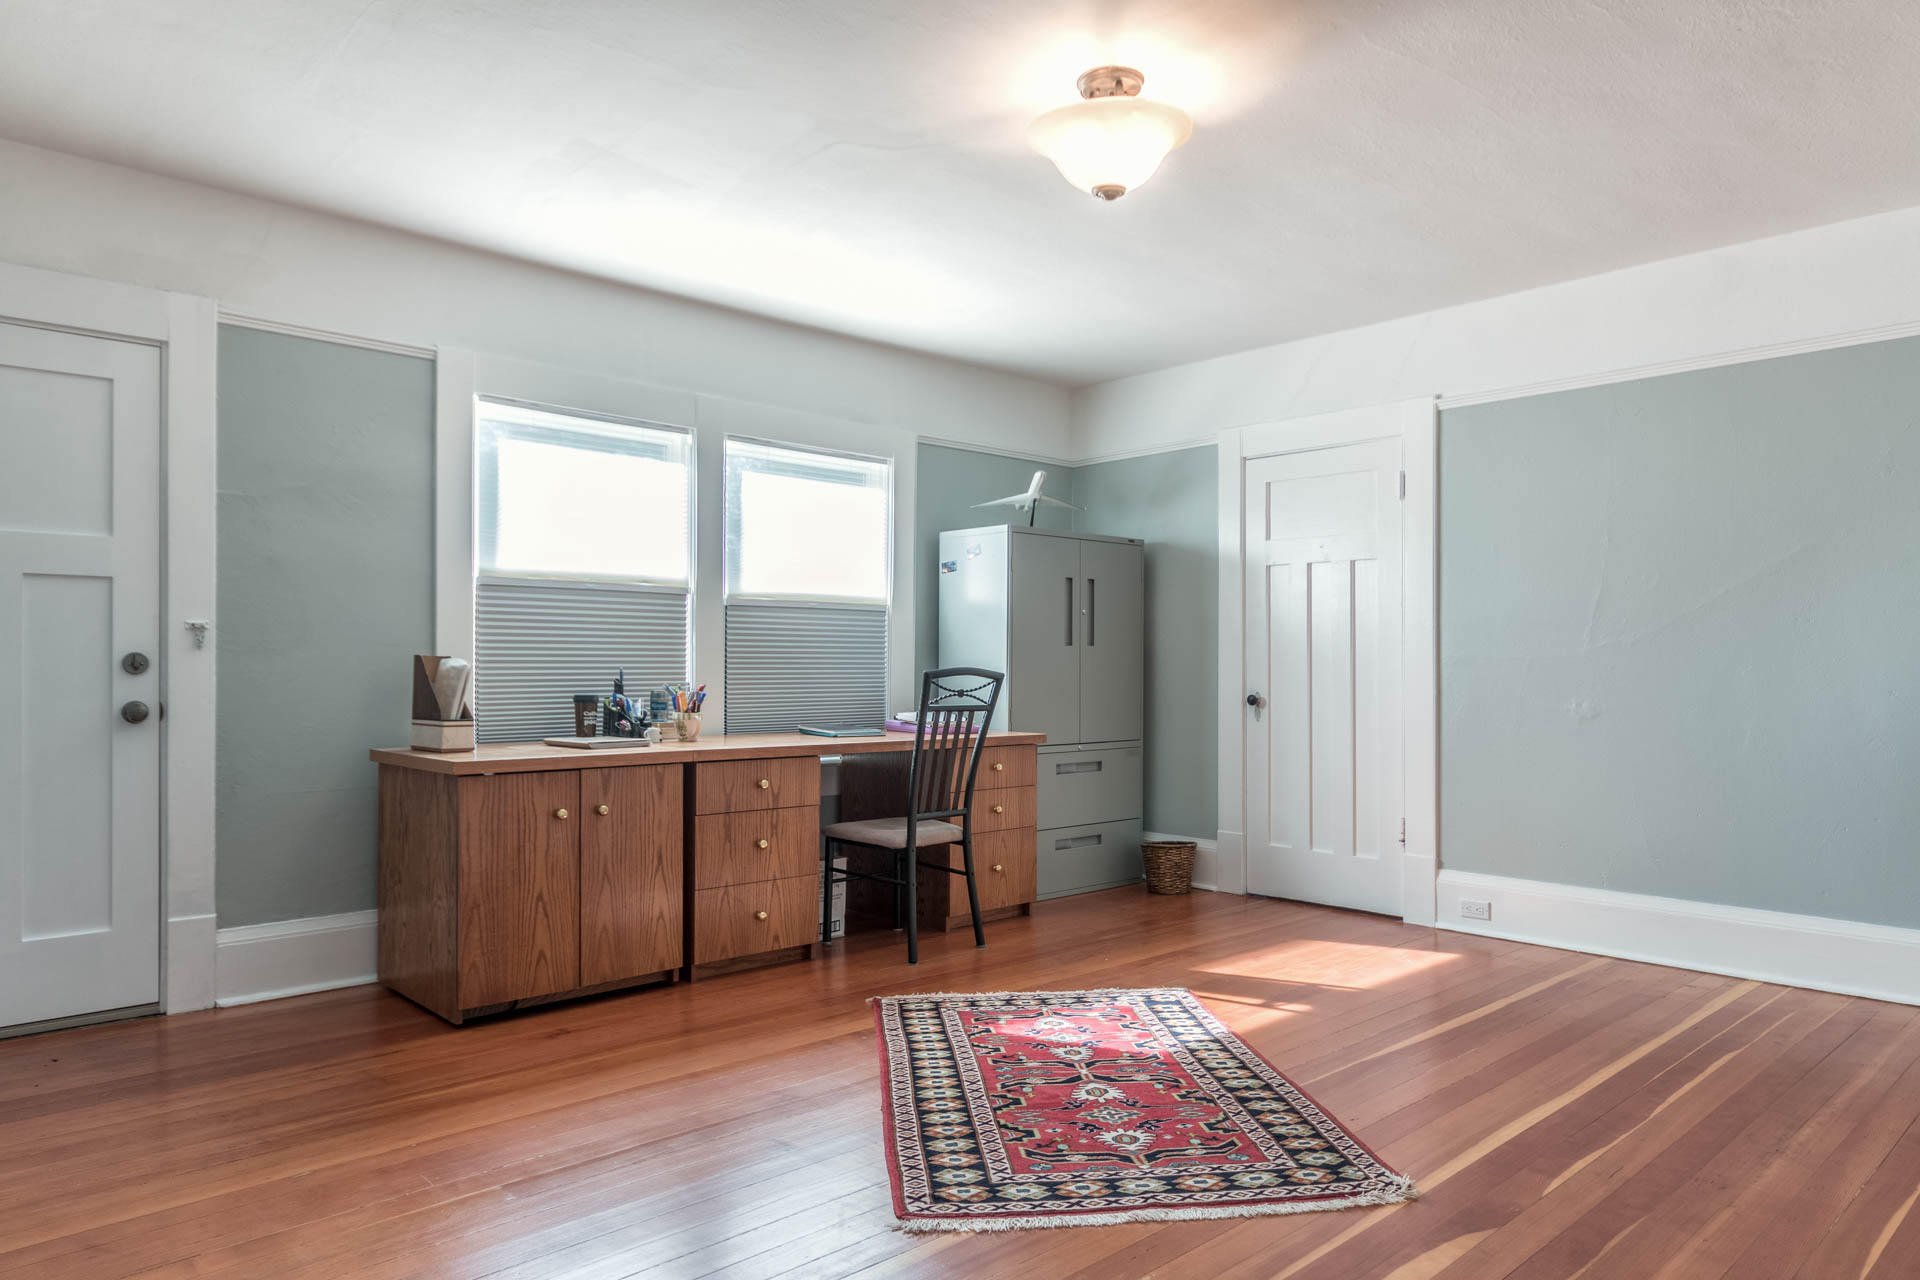 Additional photo for property listing at 1952 Runnymede Ave Victoria, British Columbia,Canadá